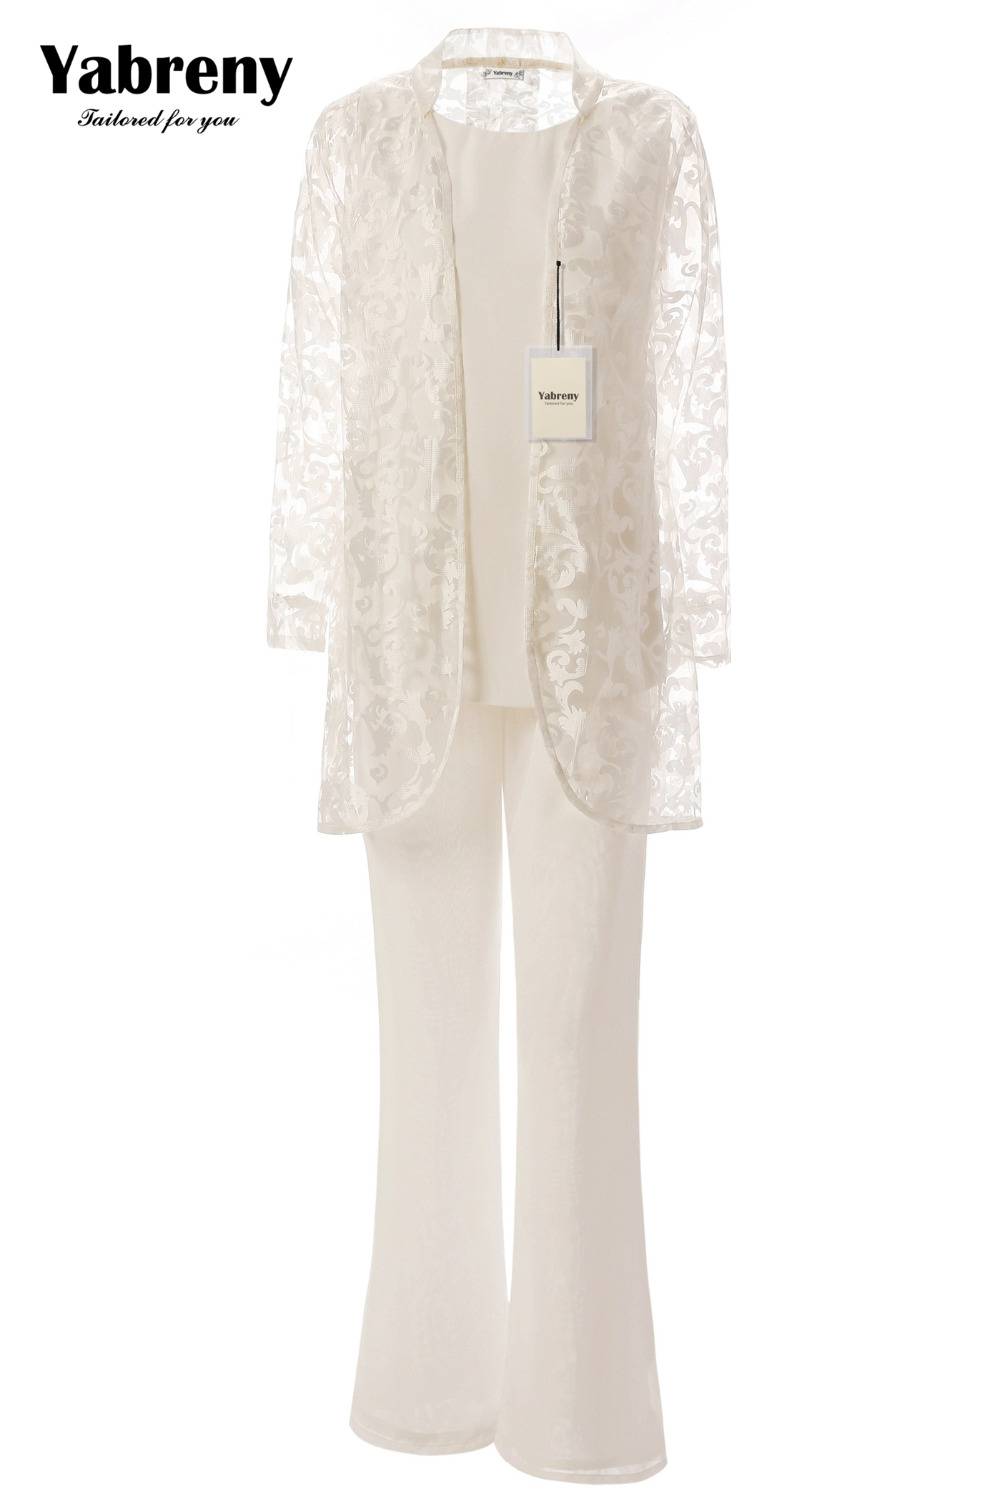 Yabreny Mother Of The Bride Pantsuit With Lace High Collar Jacket Ivory 3PC Outfit For Wedding MT0017009